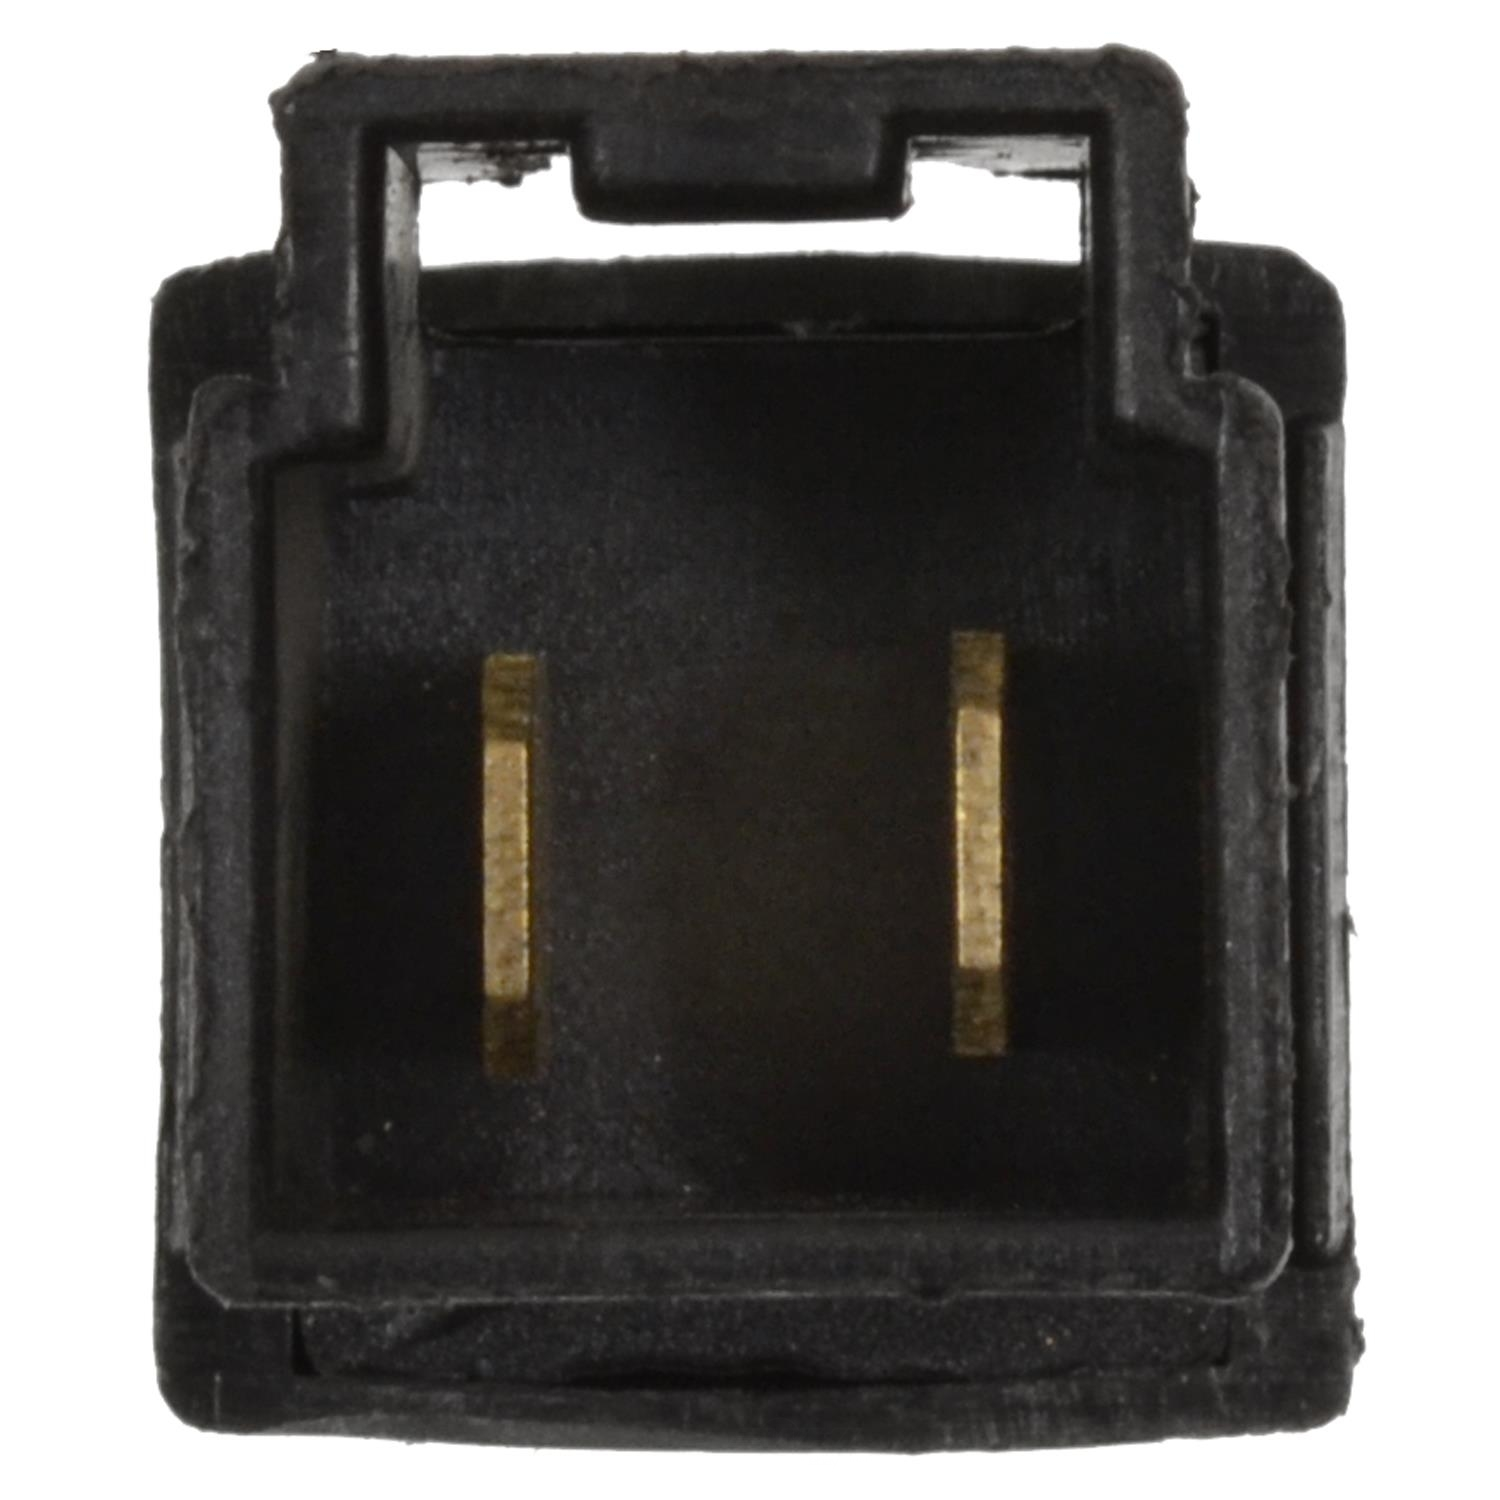 STANDARD T-SERIES - Brake Light Switch - STT SLS143T